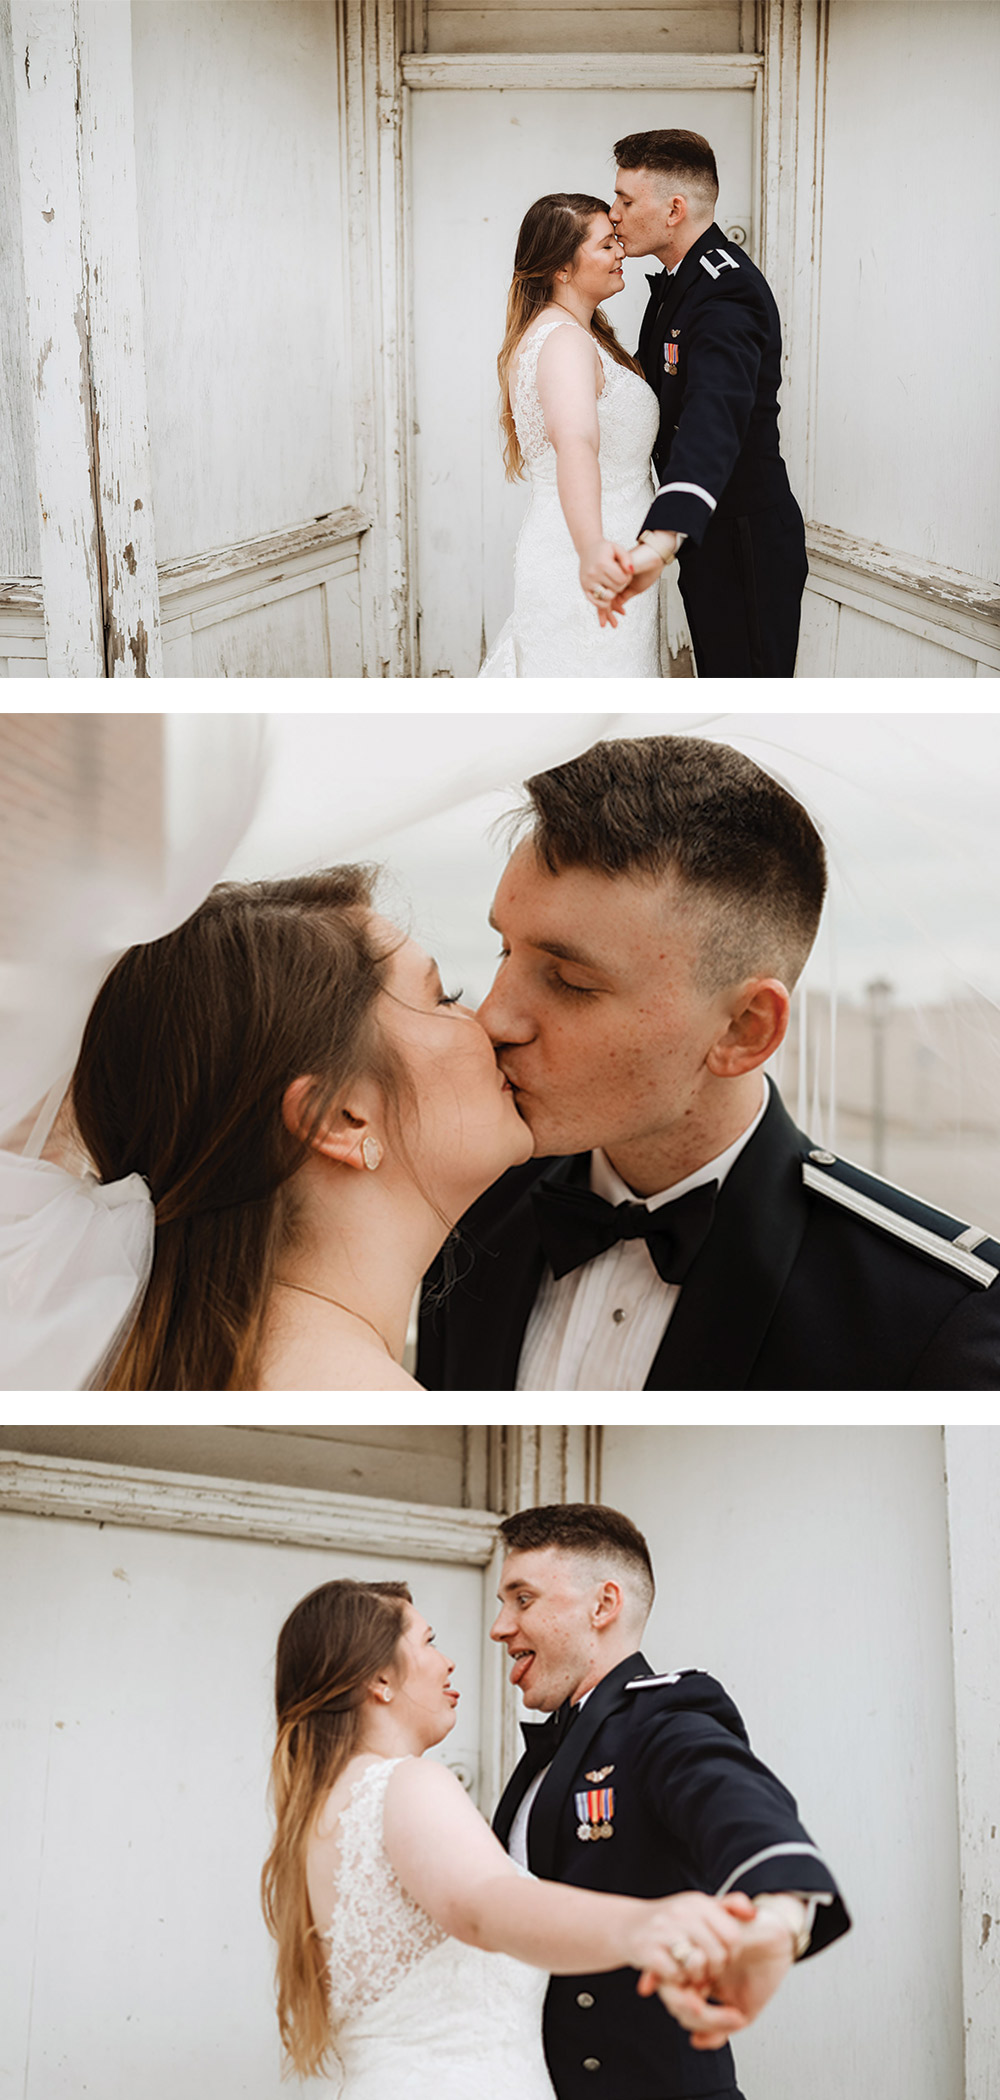 the sweetest bride and groom portraits that you will ever see!